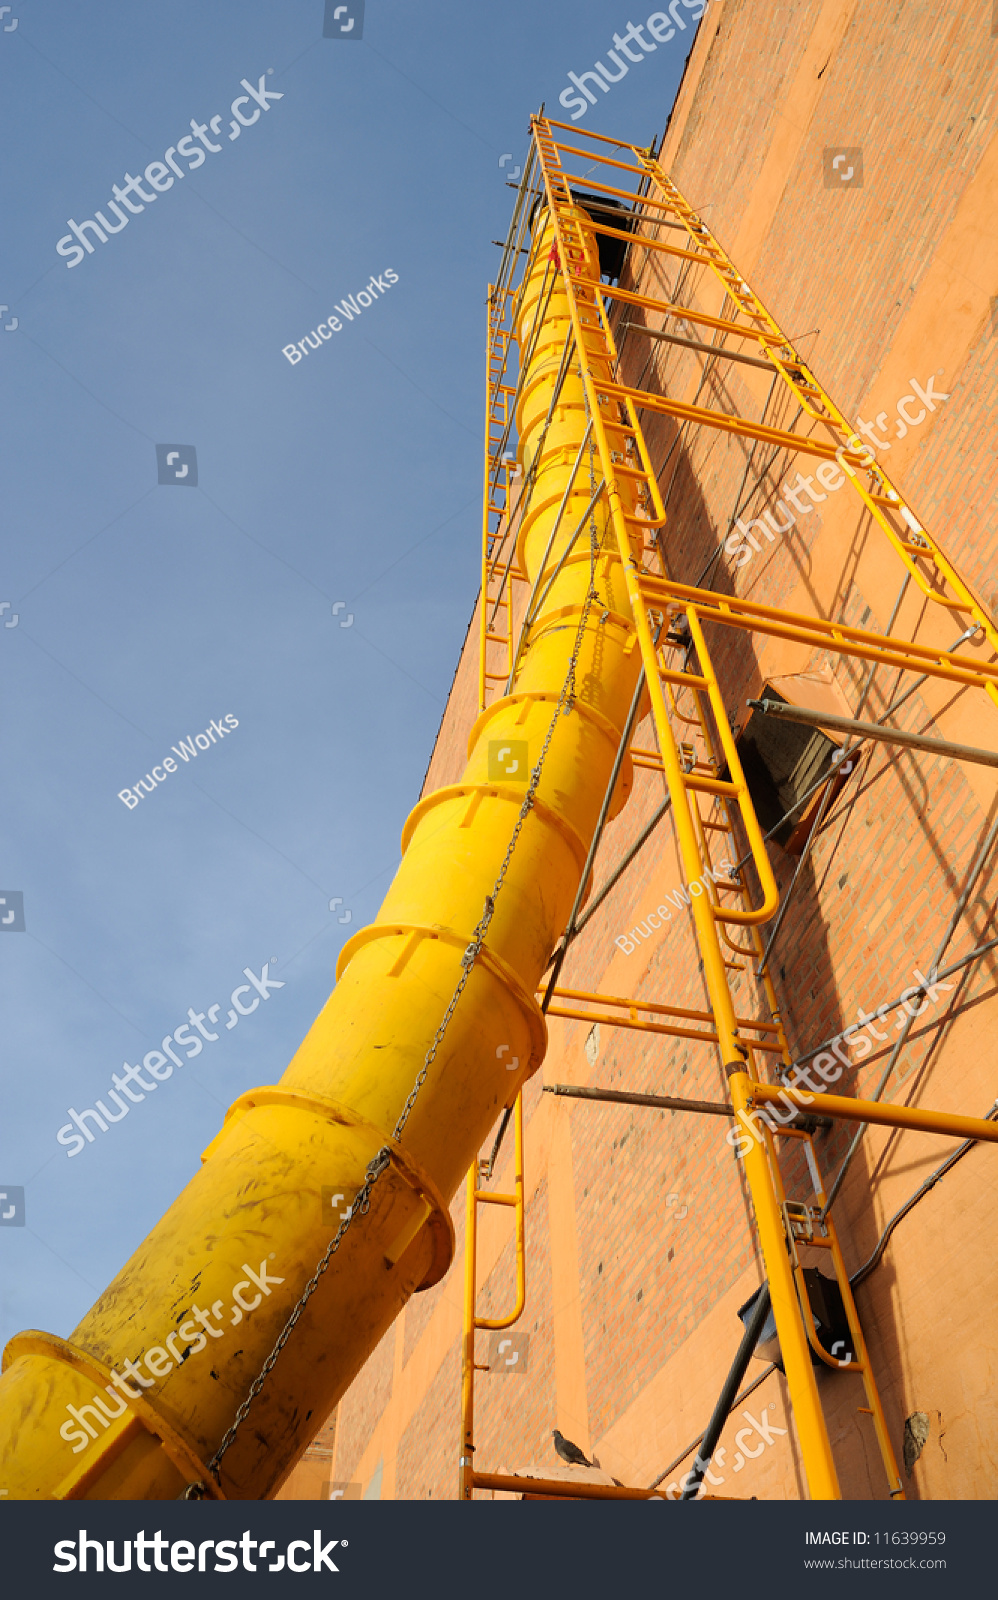 Waste Chute Used In Construction Demolition Stock Photo 11639959 : Shutterstock